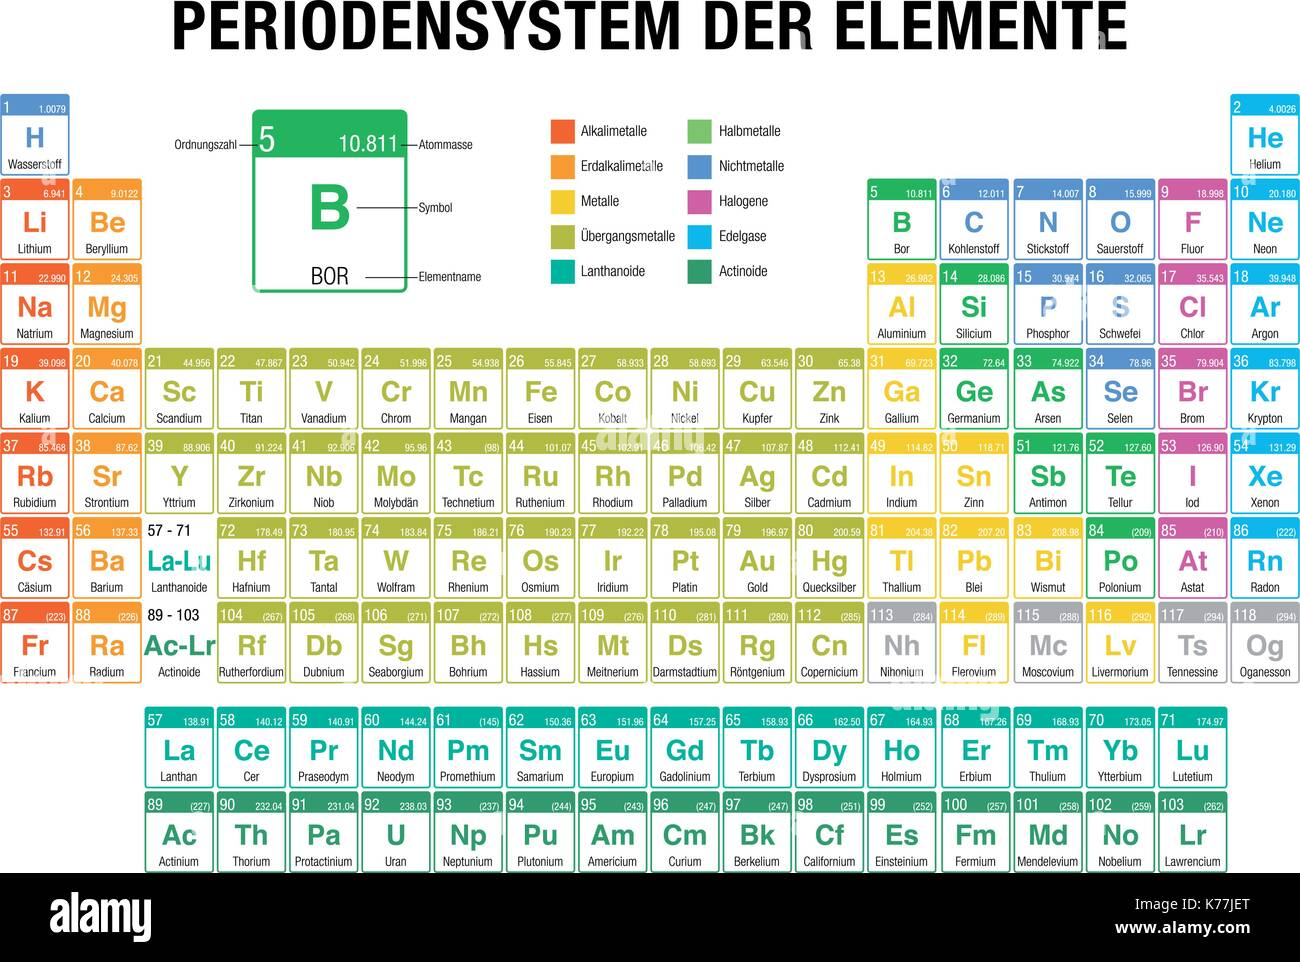 Periodensystem der elemente periodic table of elements in german periodensystem der elemente periodic table of elements in german language on white background with the 4 new elements included on november 28 2016 urtaz Choice Image